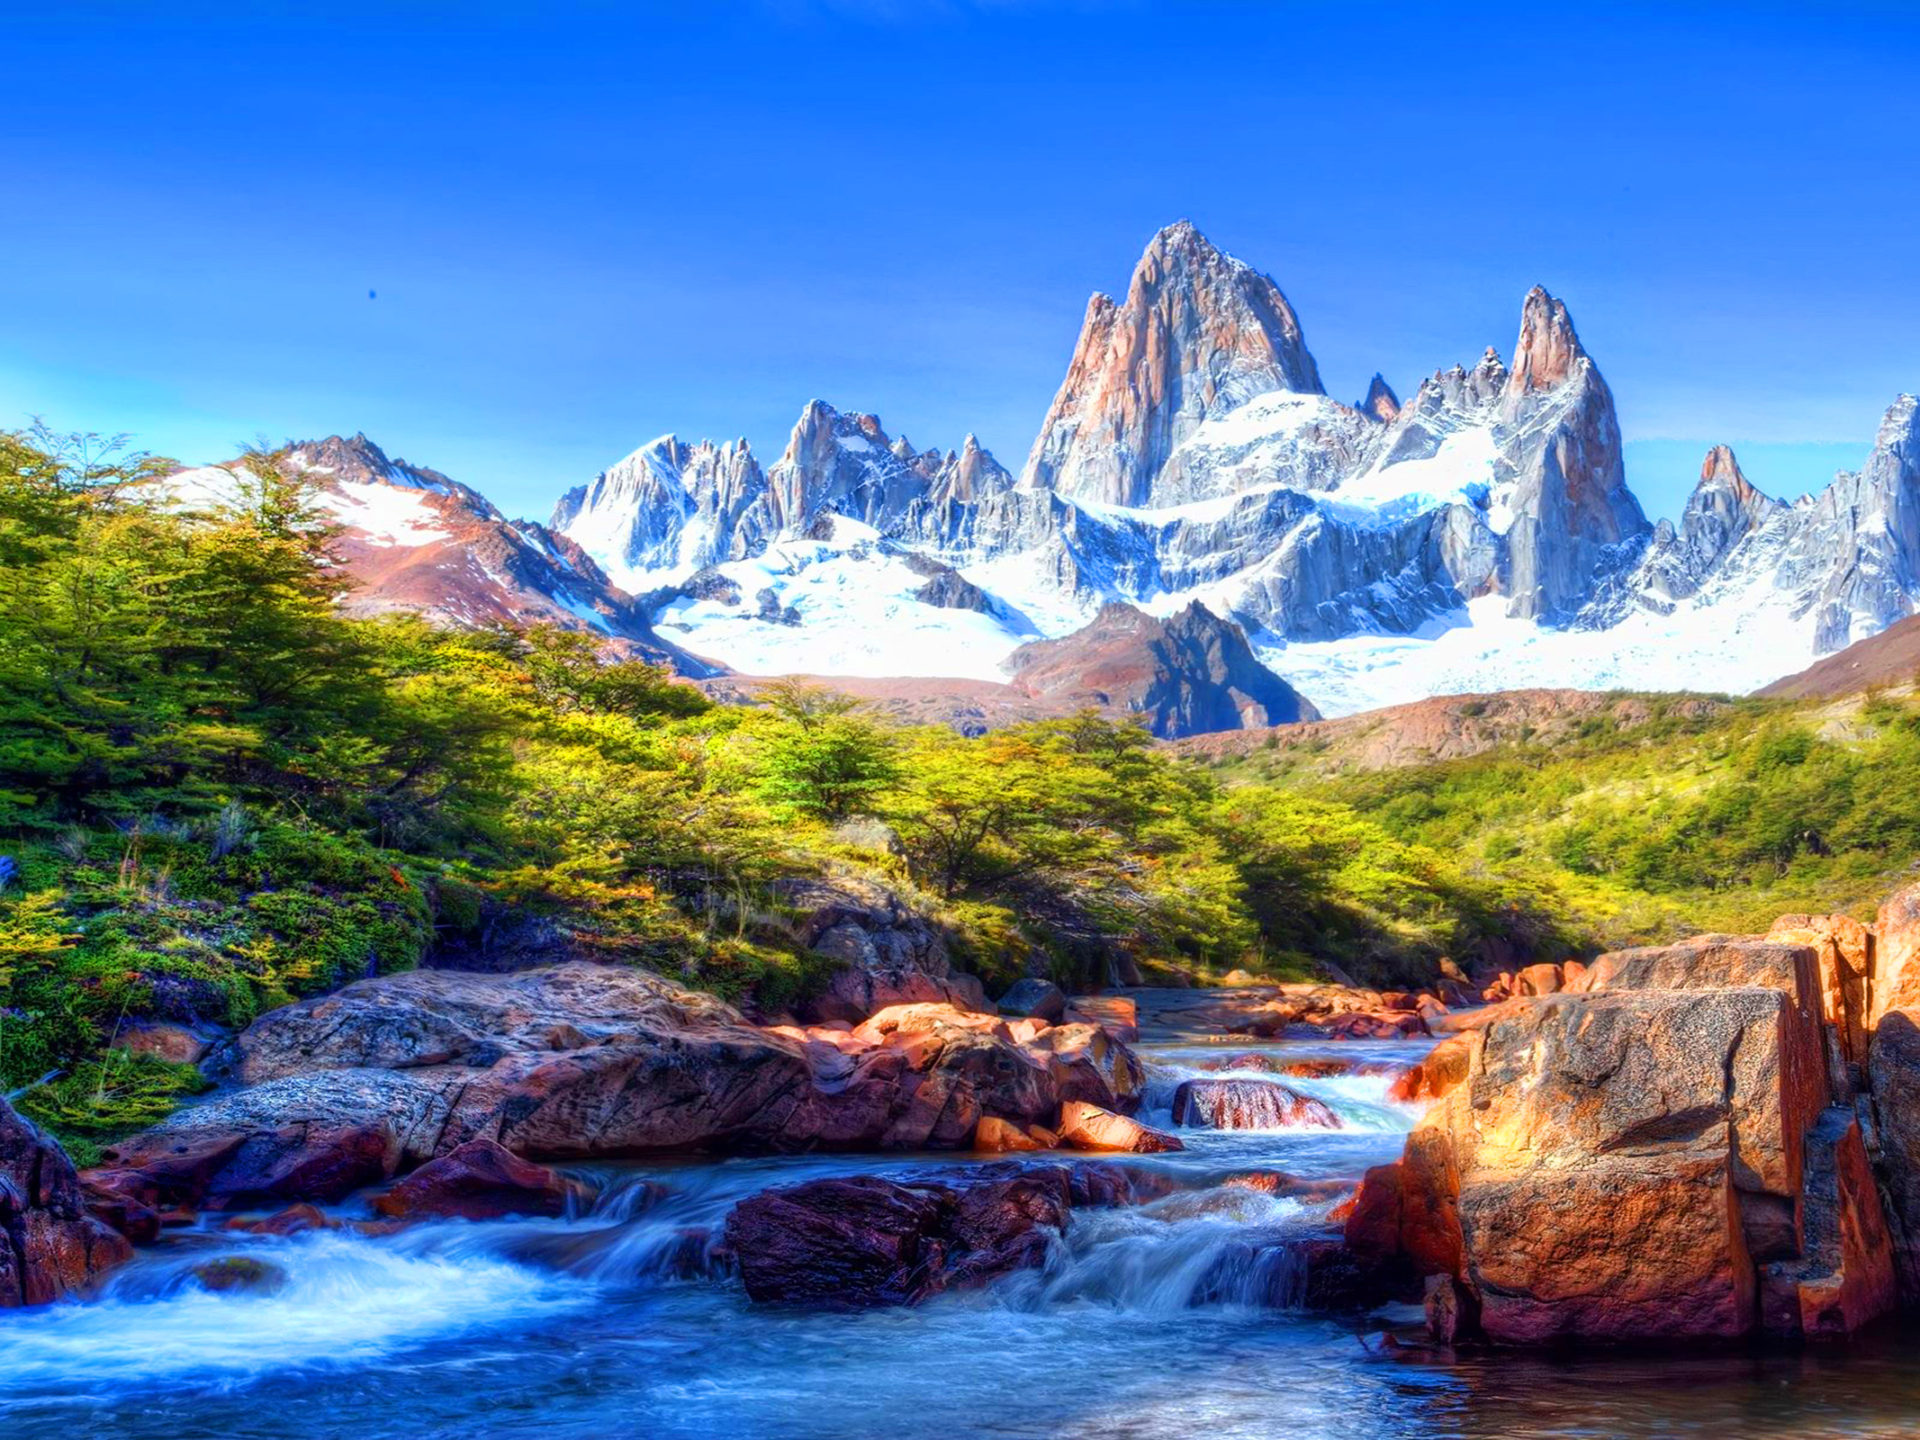 Fall Wallpaper Free Iphone Mountain Scenery With Snow Covered River Rocks Beautiful